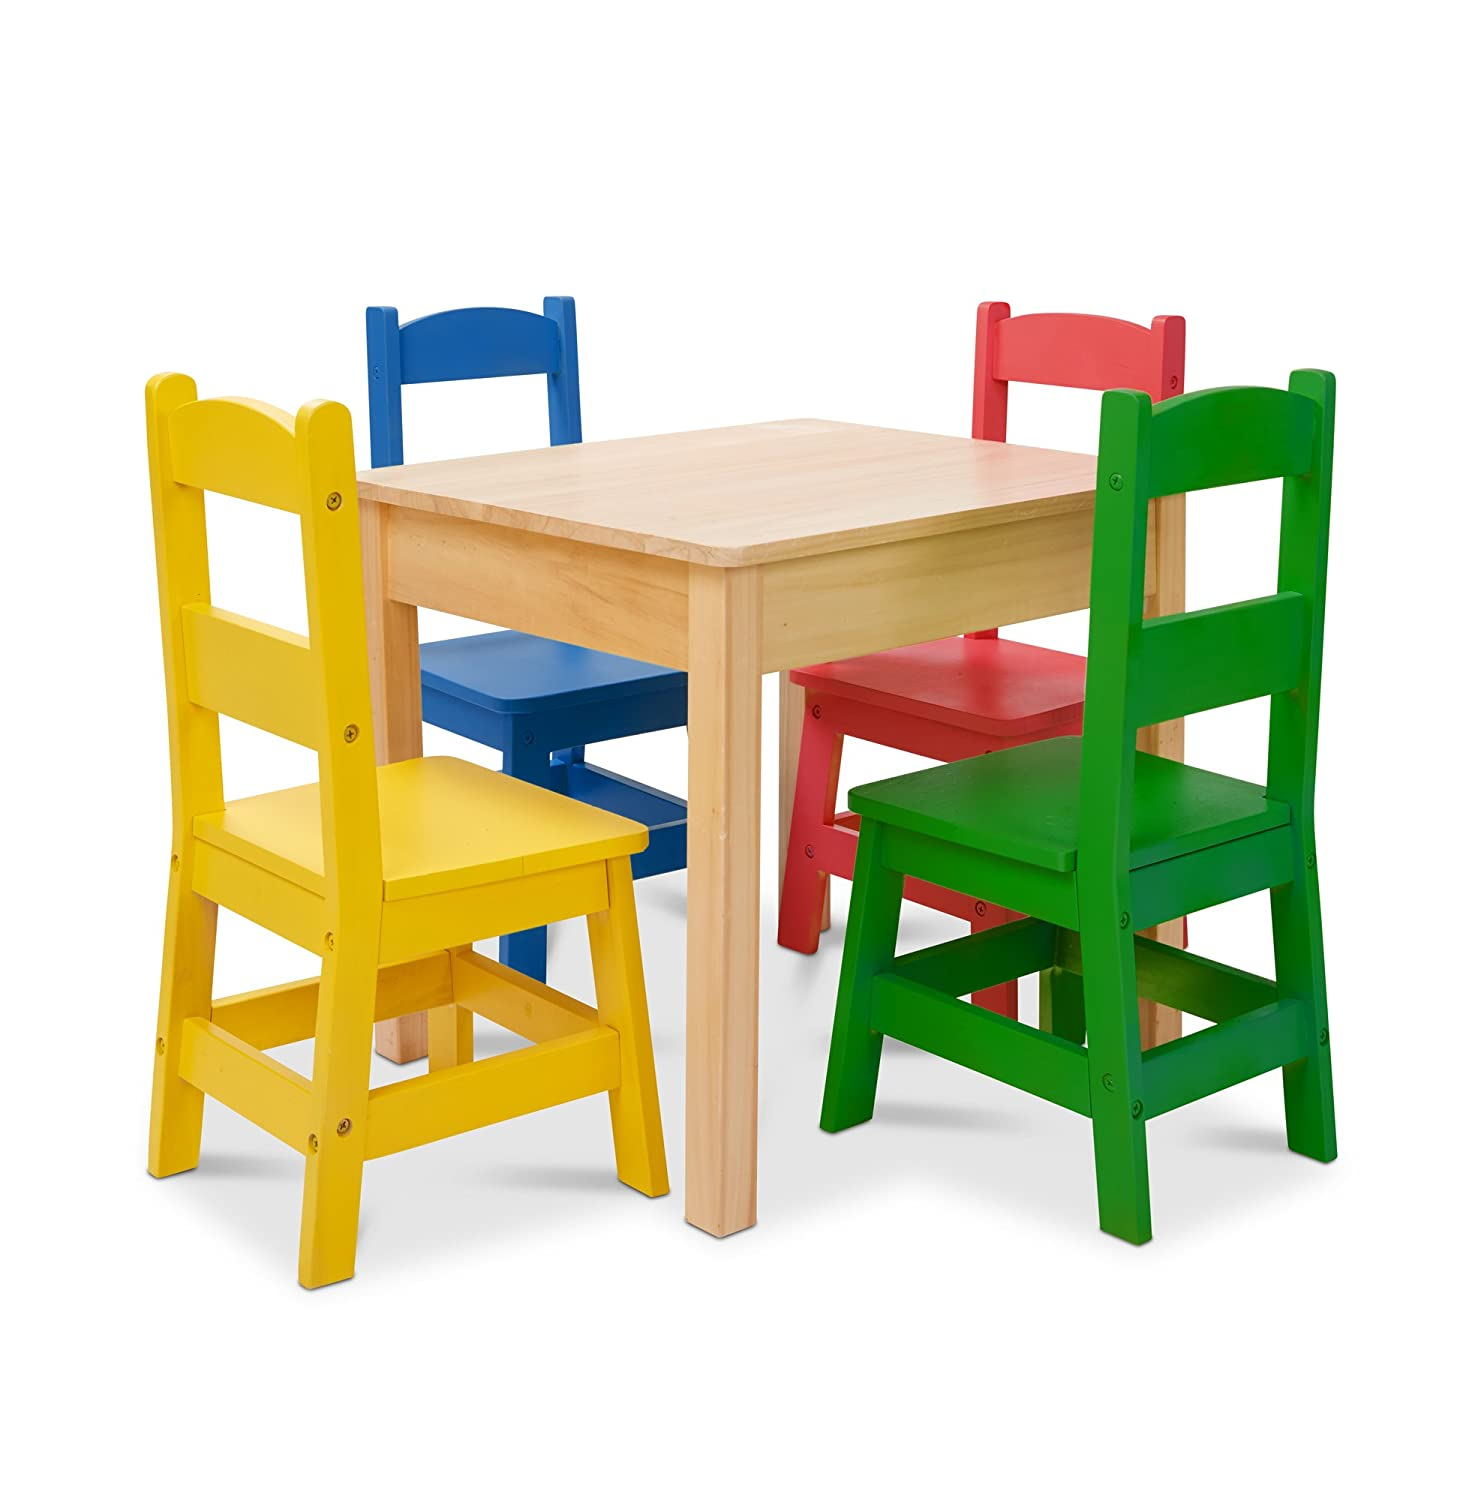 Melissa & Doug Kids Furniture Wooden Table & 4 Chairs - Primary (Natural Table, Yellow, Blue, Red, Green Chairs) (Amazon Exclusive) 30233